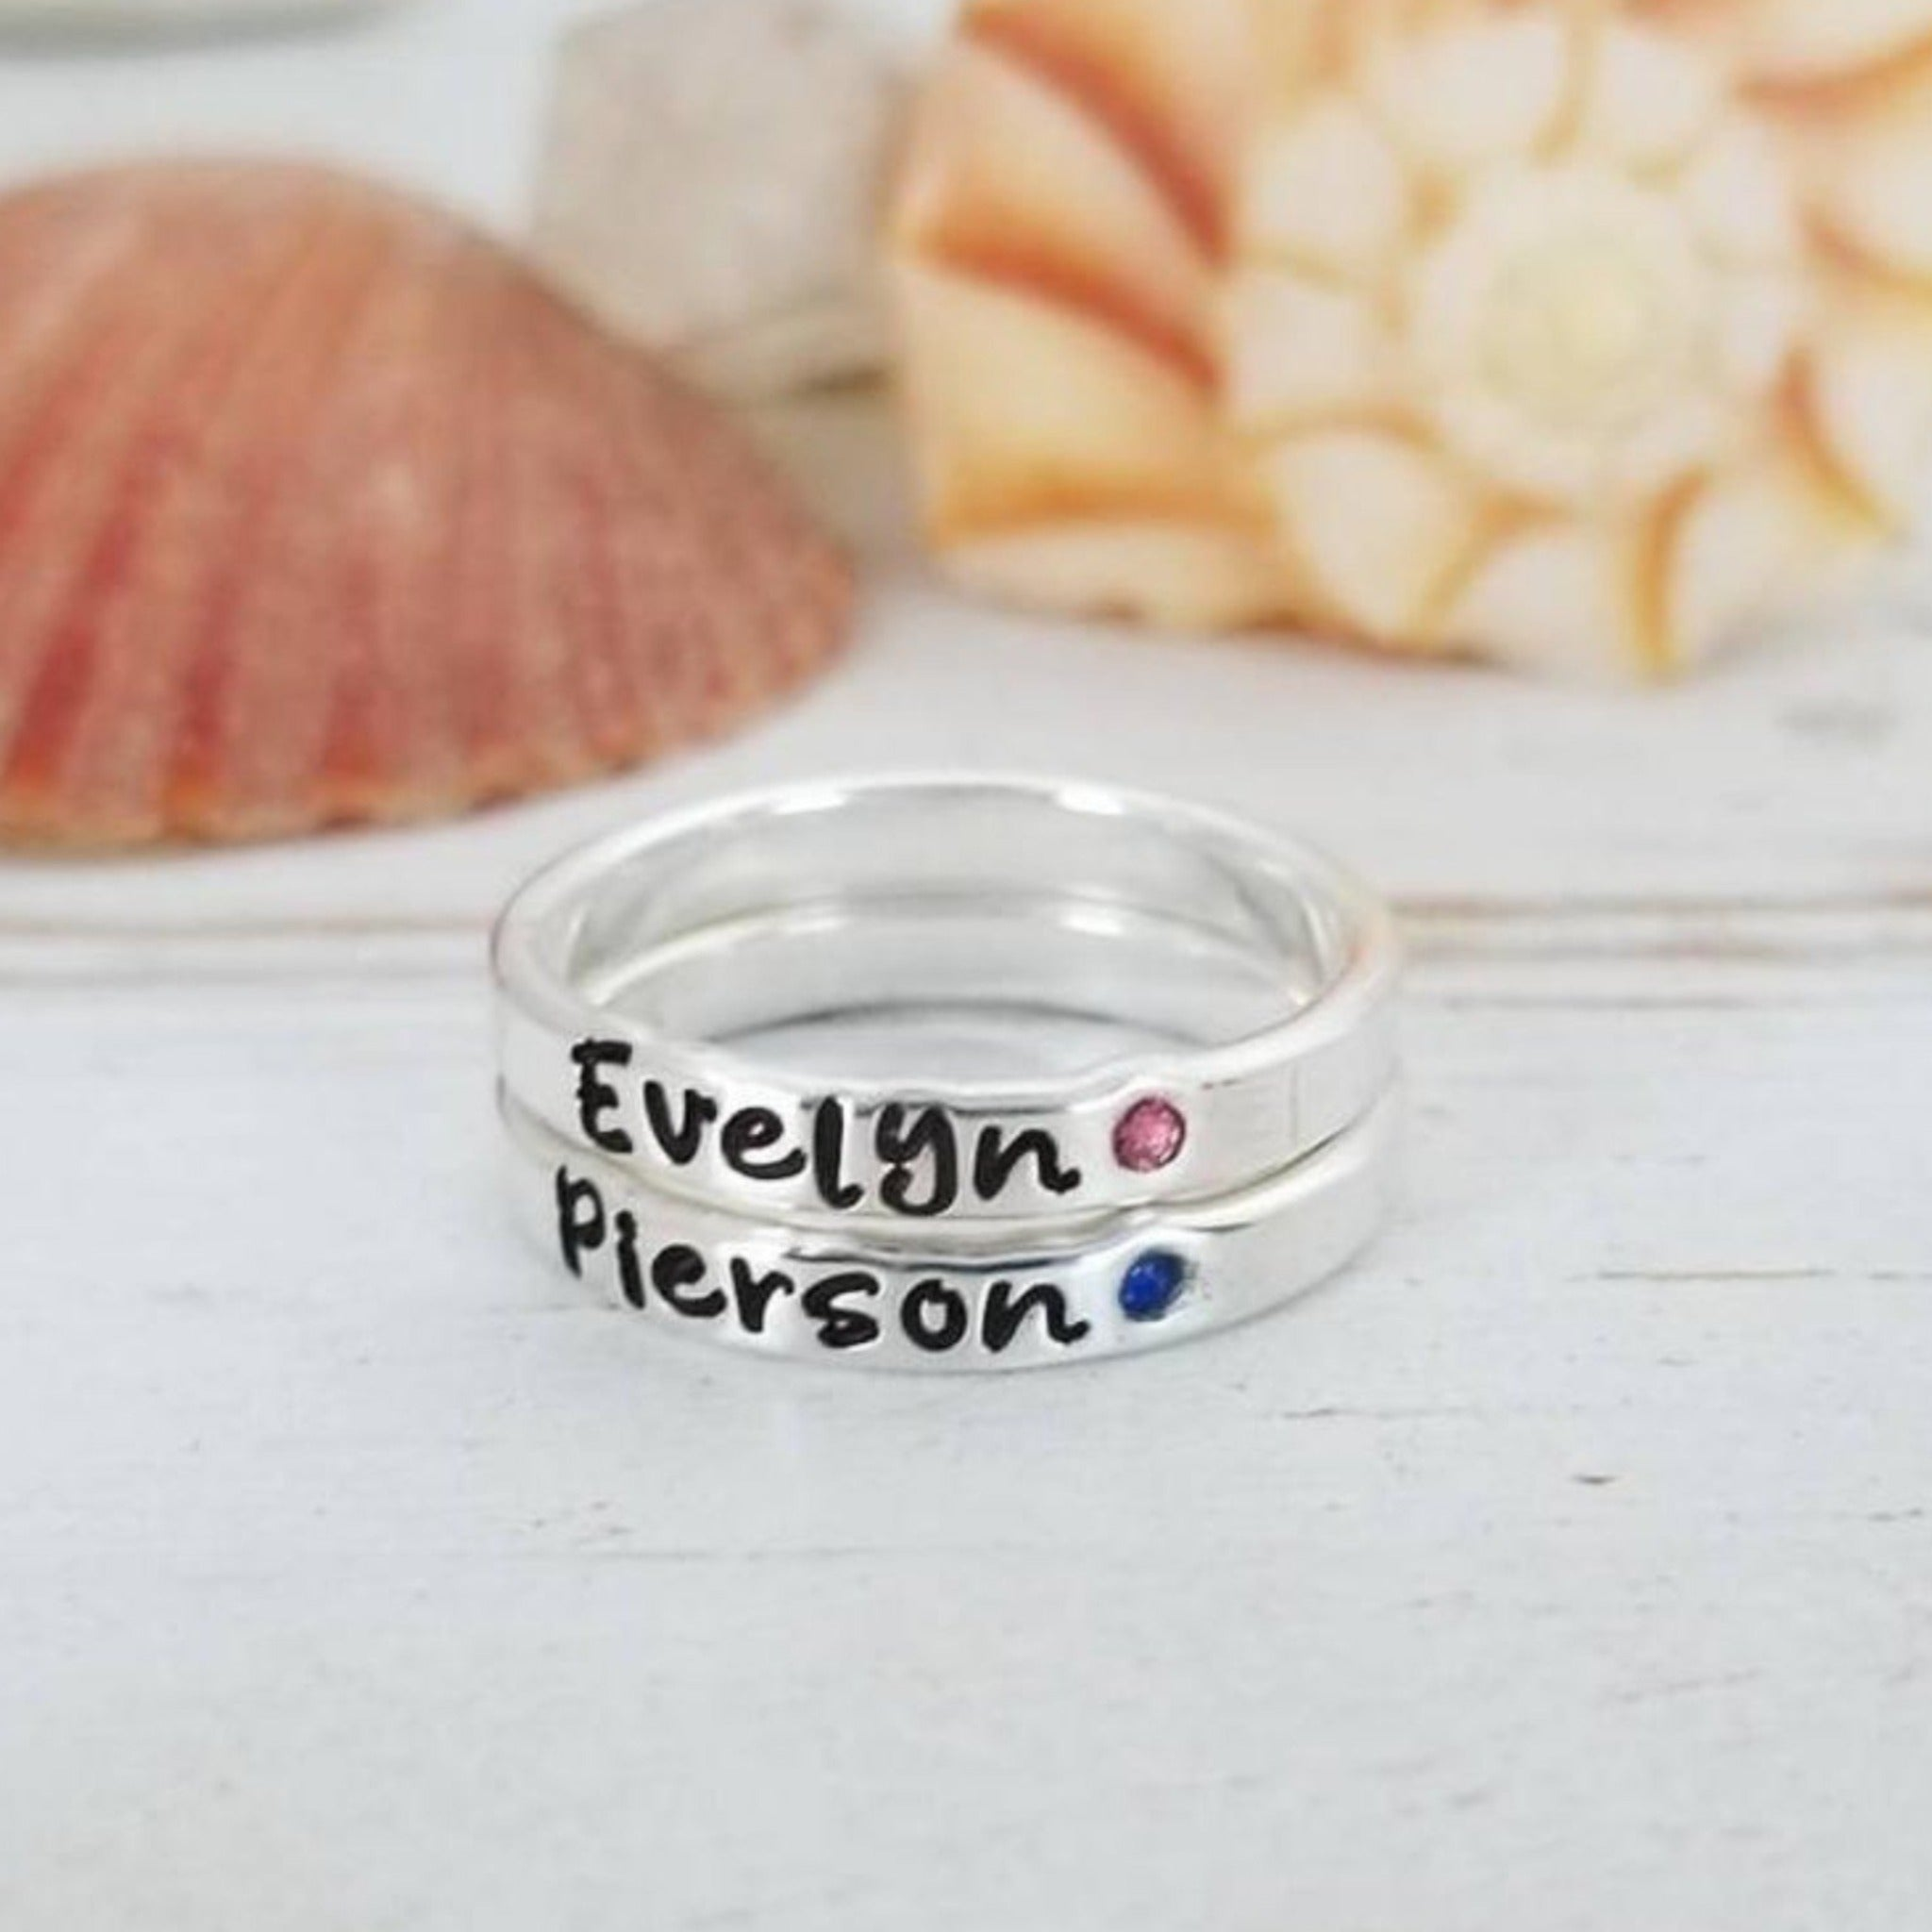 3mm Wide Name and Birthstone Ring - Sterling Silver